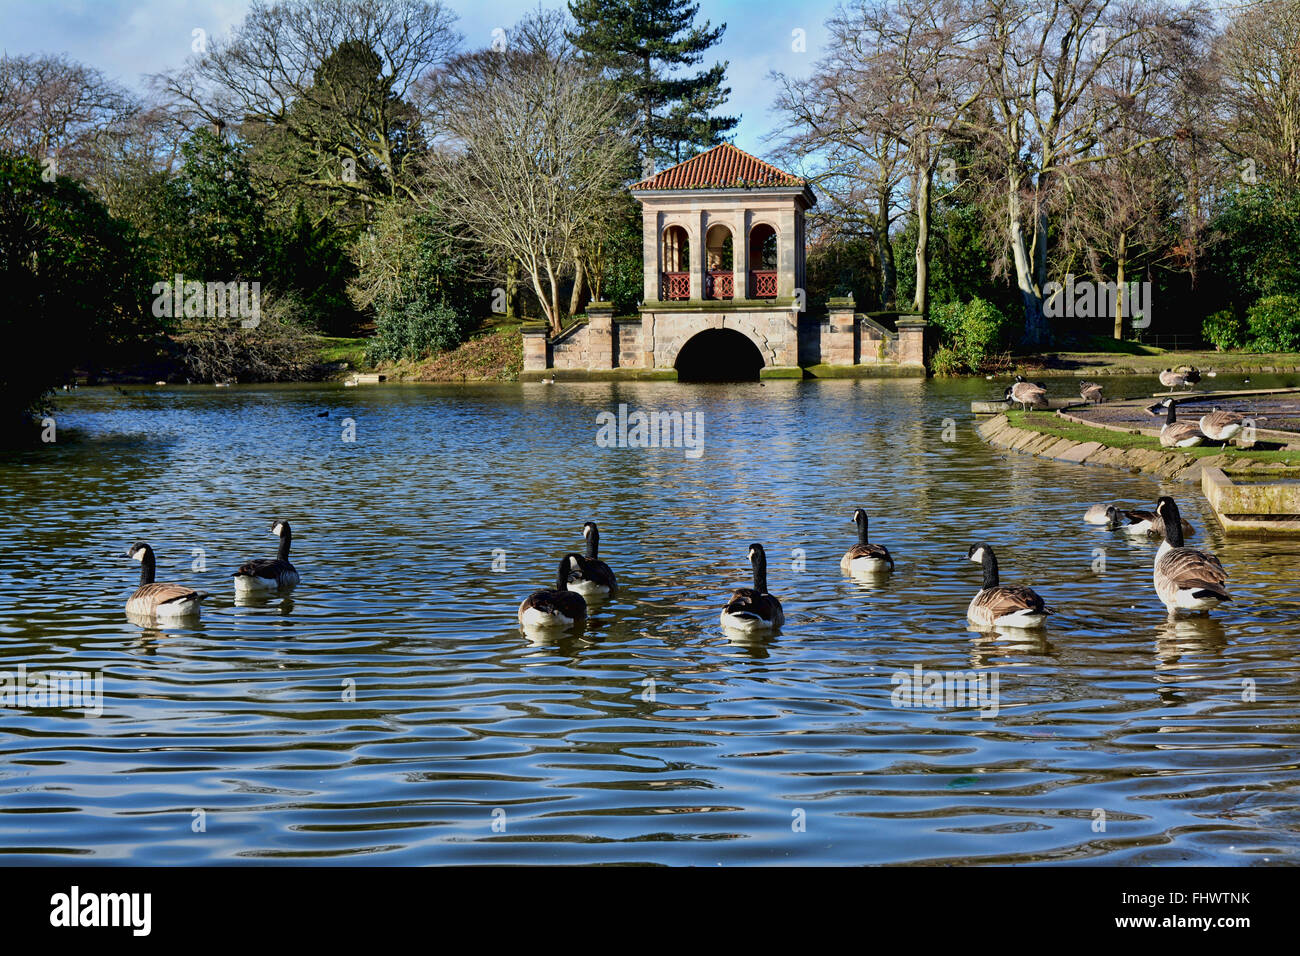 Geese enjoying a little winter sunshine by swimming towards the famous Boat House on one of the lakes in Birkenhead - Stock Image